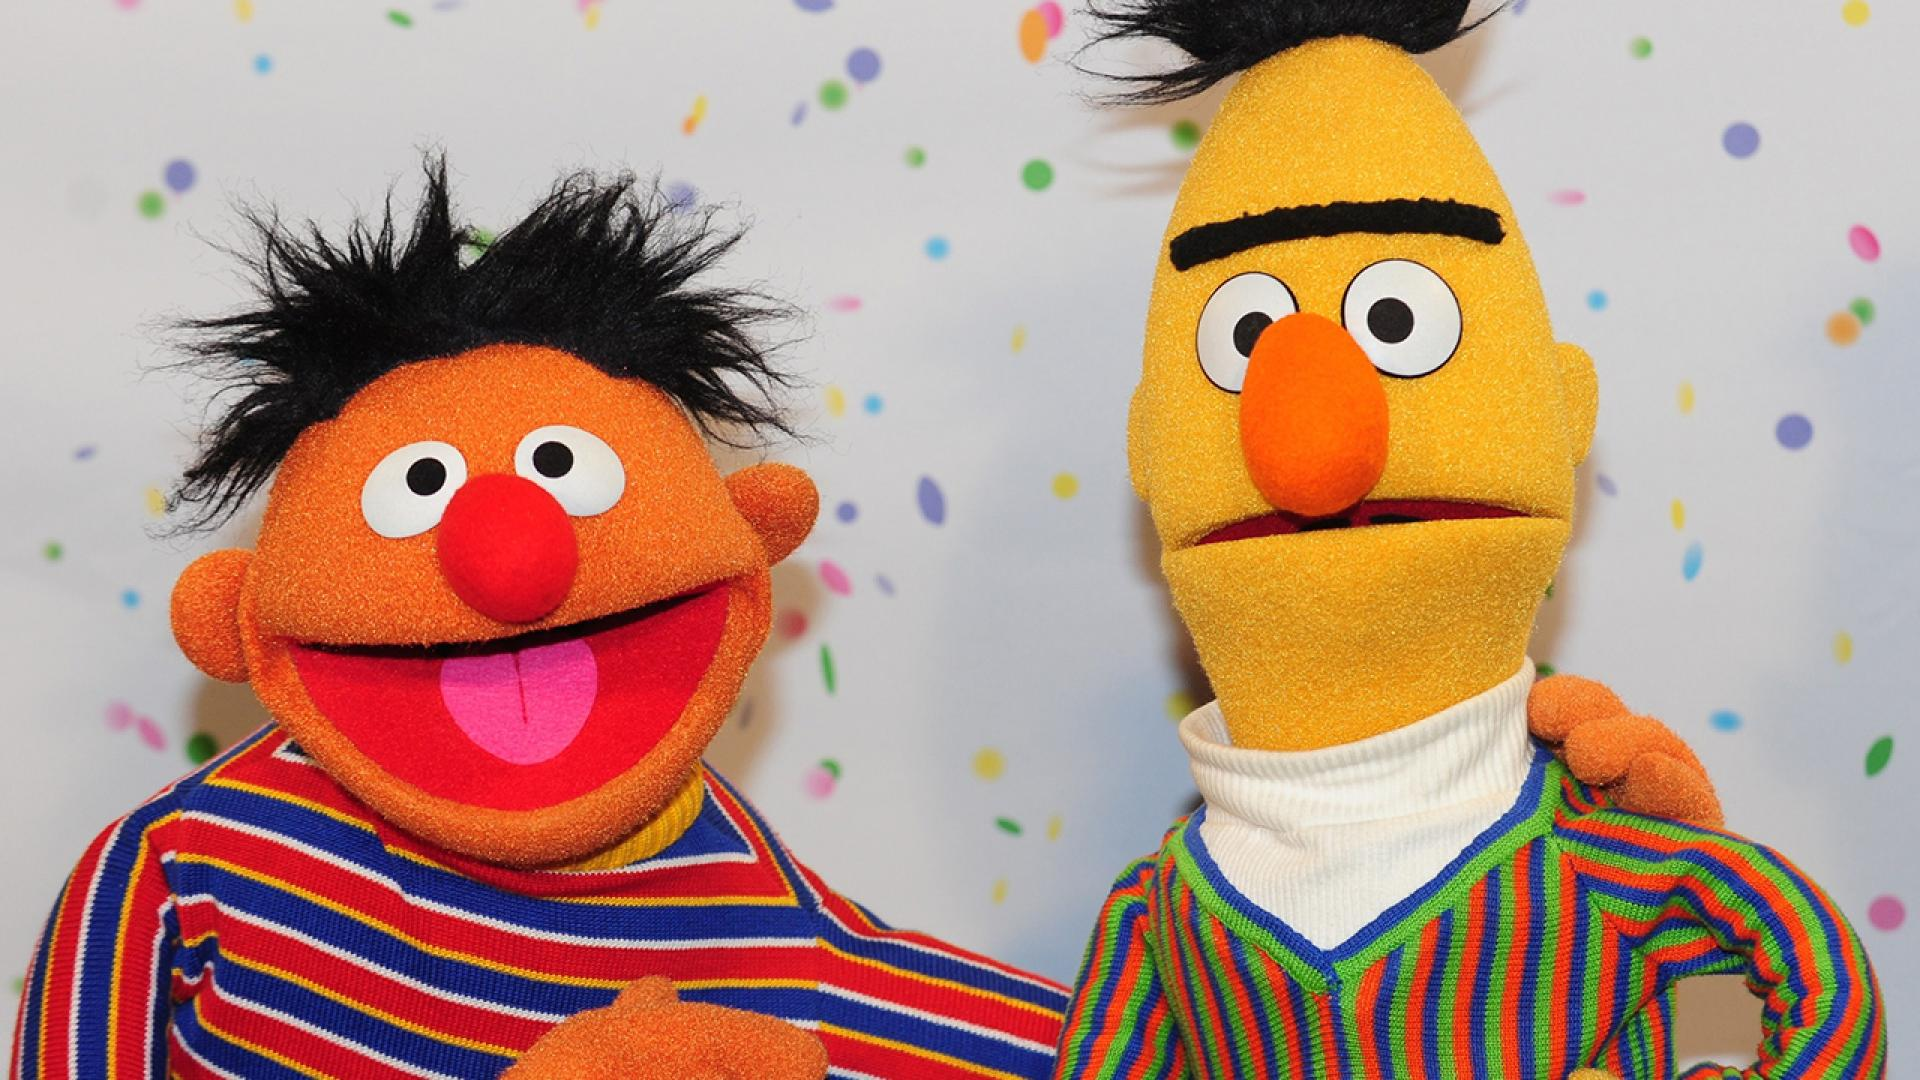 """A """"Sesame Street"""" writer says he modeled Bert and Ernie after his relationship with his same-sex partner."""